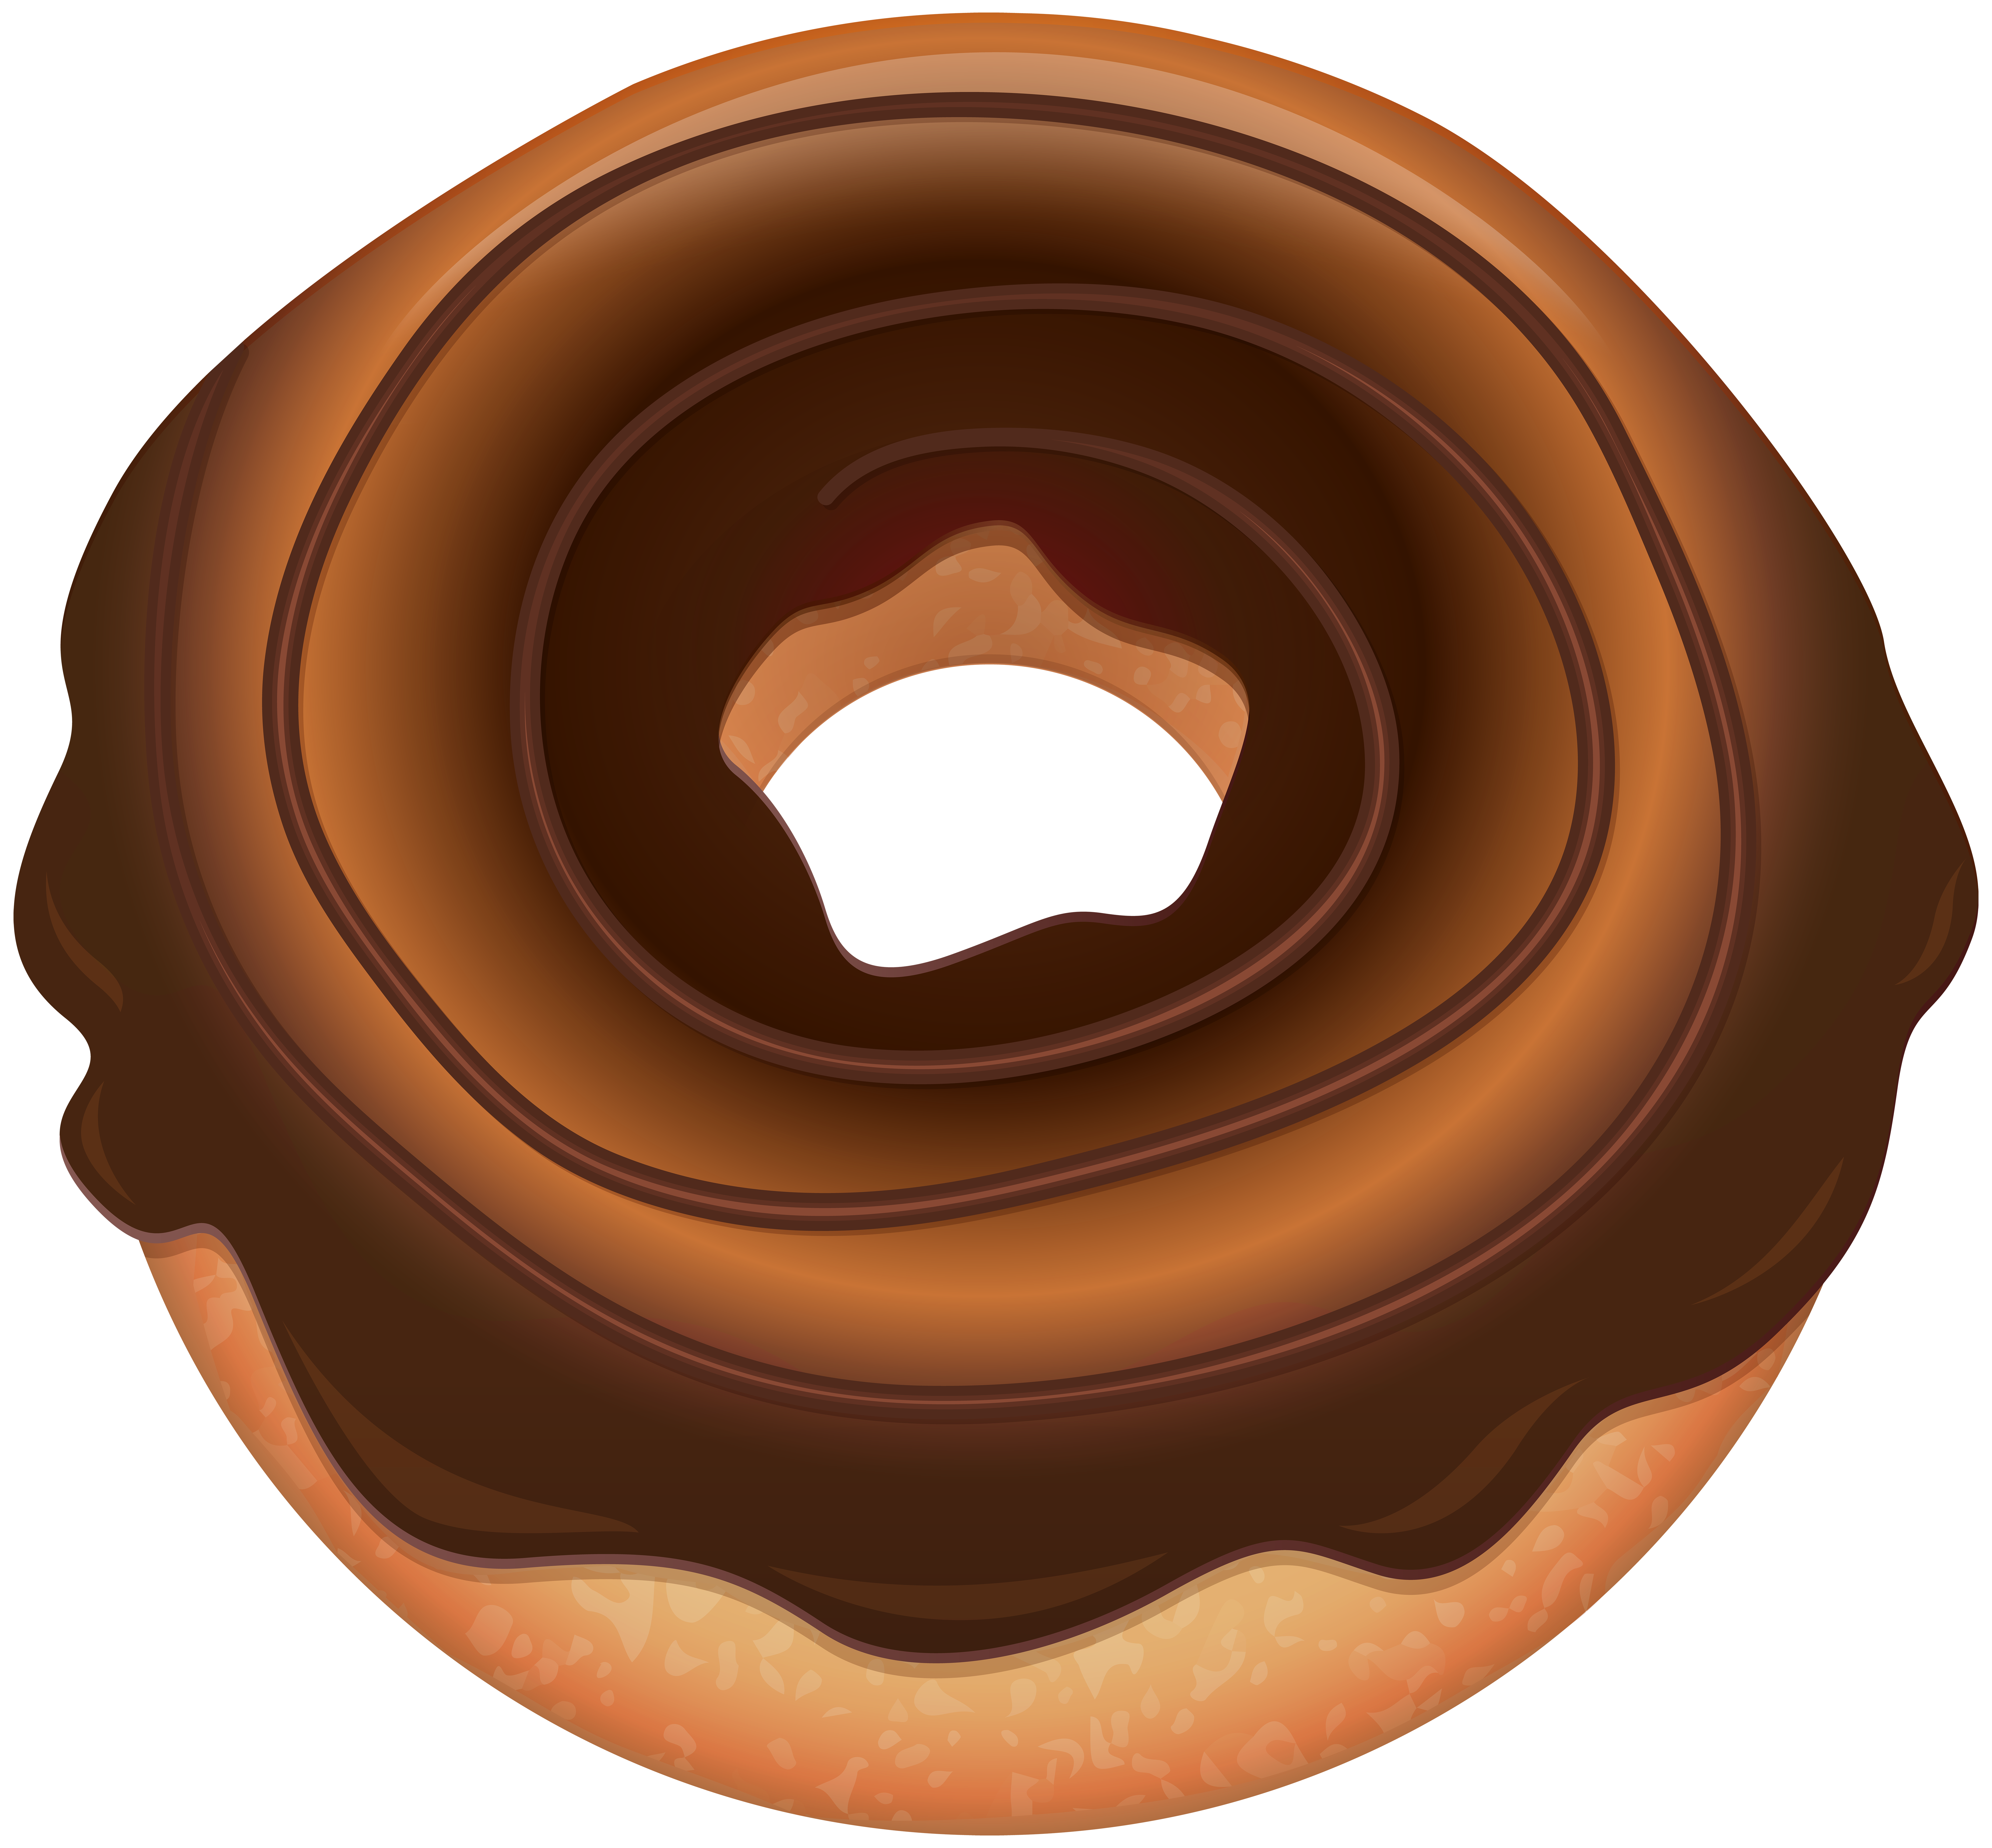 Heart donut clipart download Chocolate Donut PNG Clip Art Image | Gallery Yopriceville - High ... download